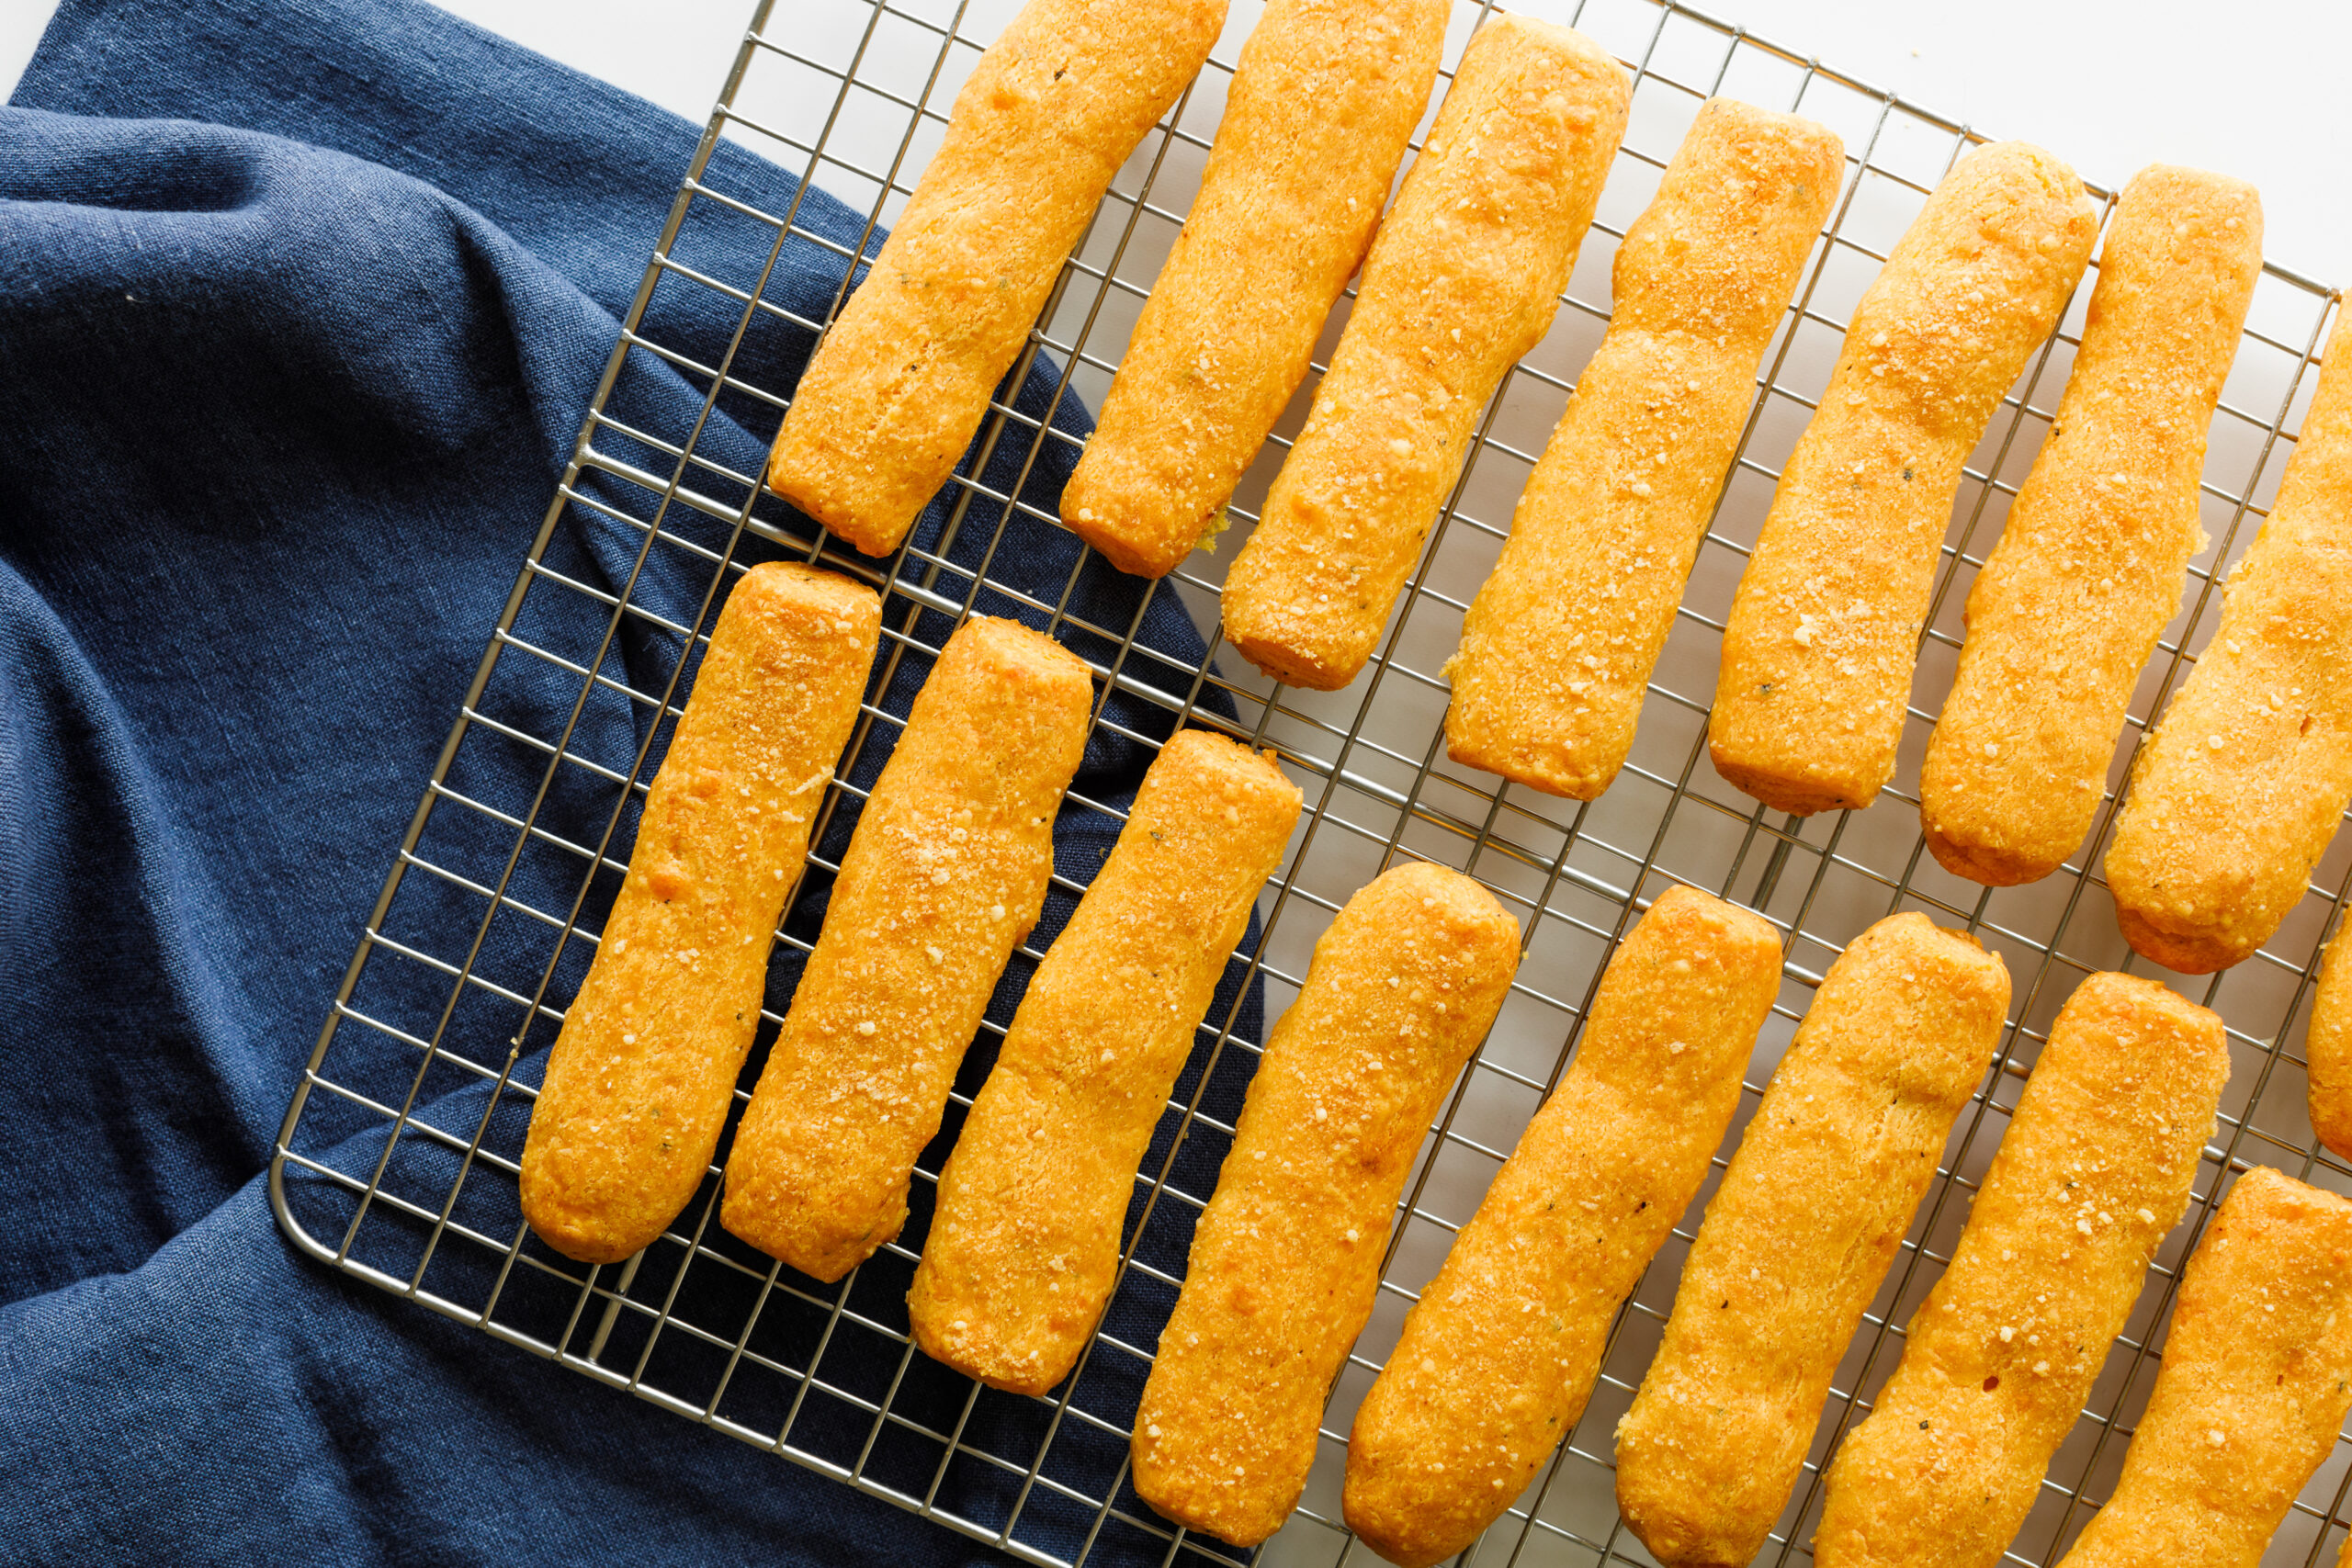 The finished cheese sticks on a cooling rack on top of a blue tablecloth.